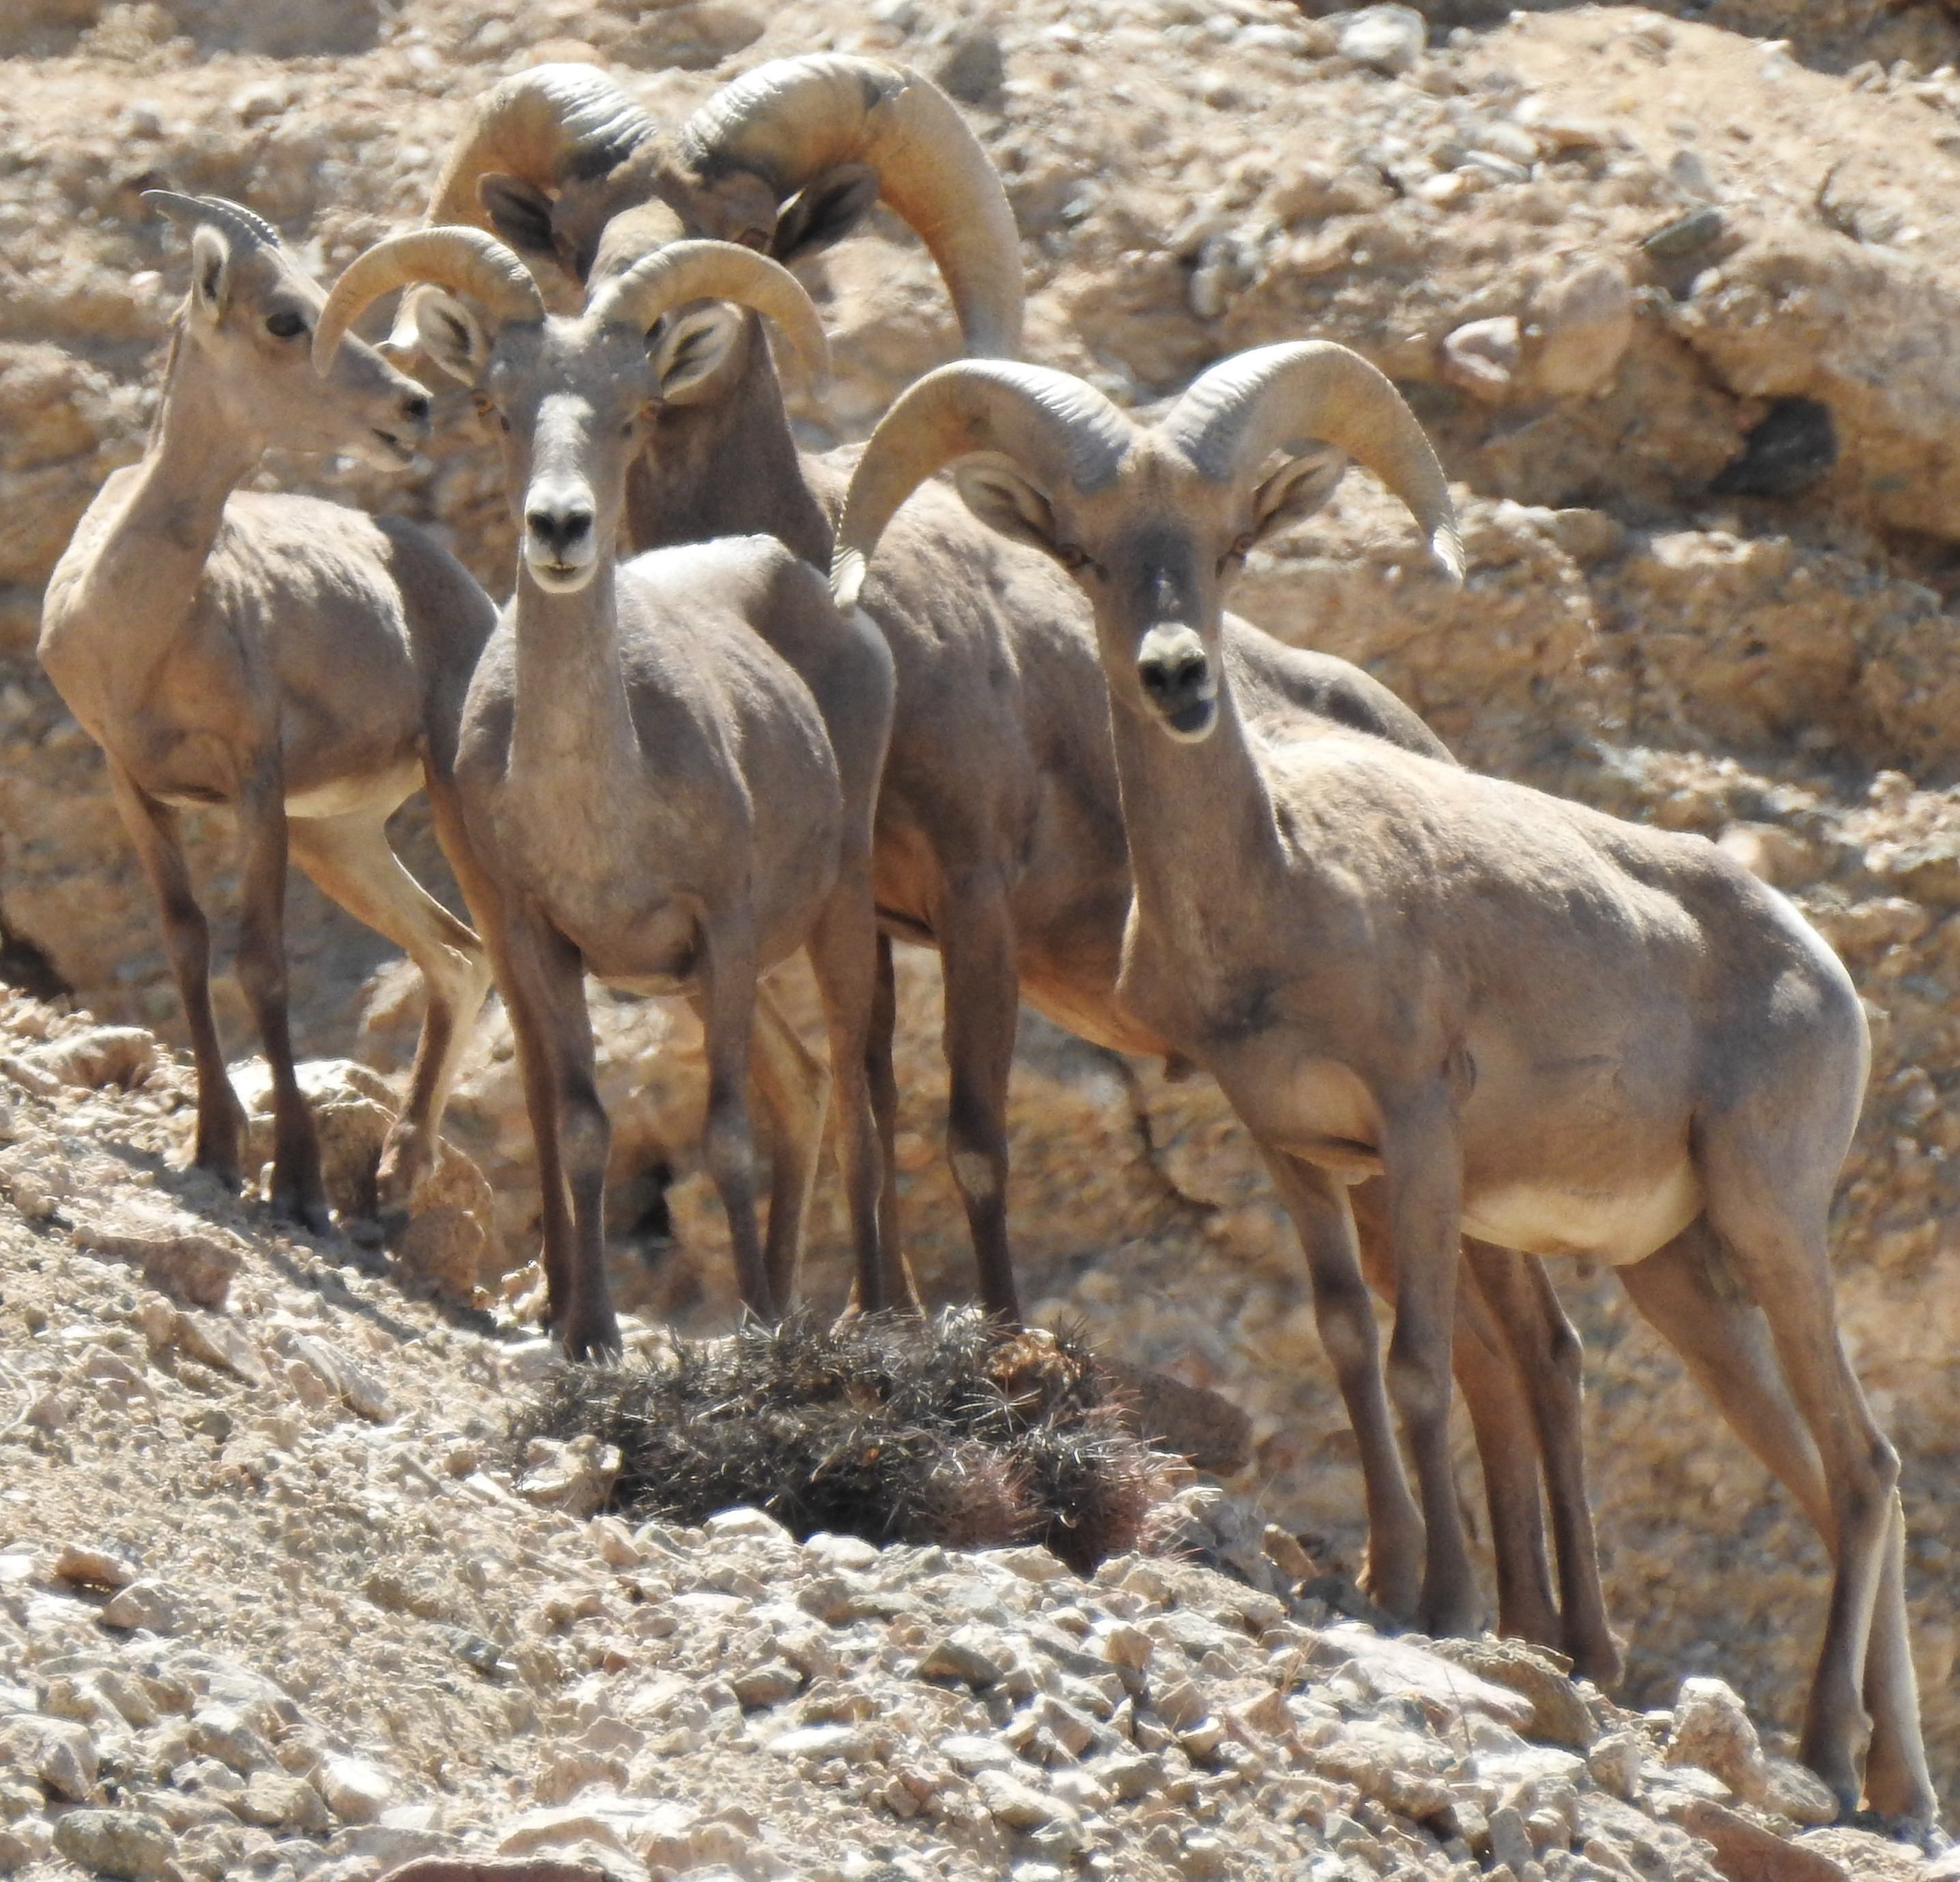 Desert bighorn sheep at Afton Canyon Area of Critical Environmental Concern (ACEC), within the Mojave Trails National Monument Tom Egan/Defenders of Wildlife